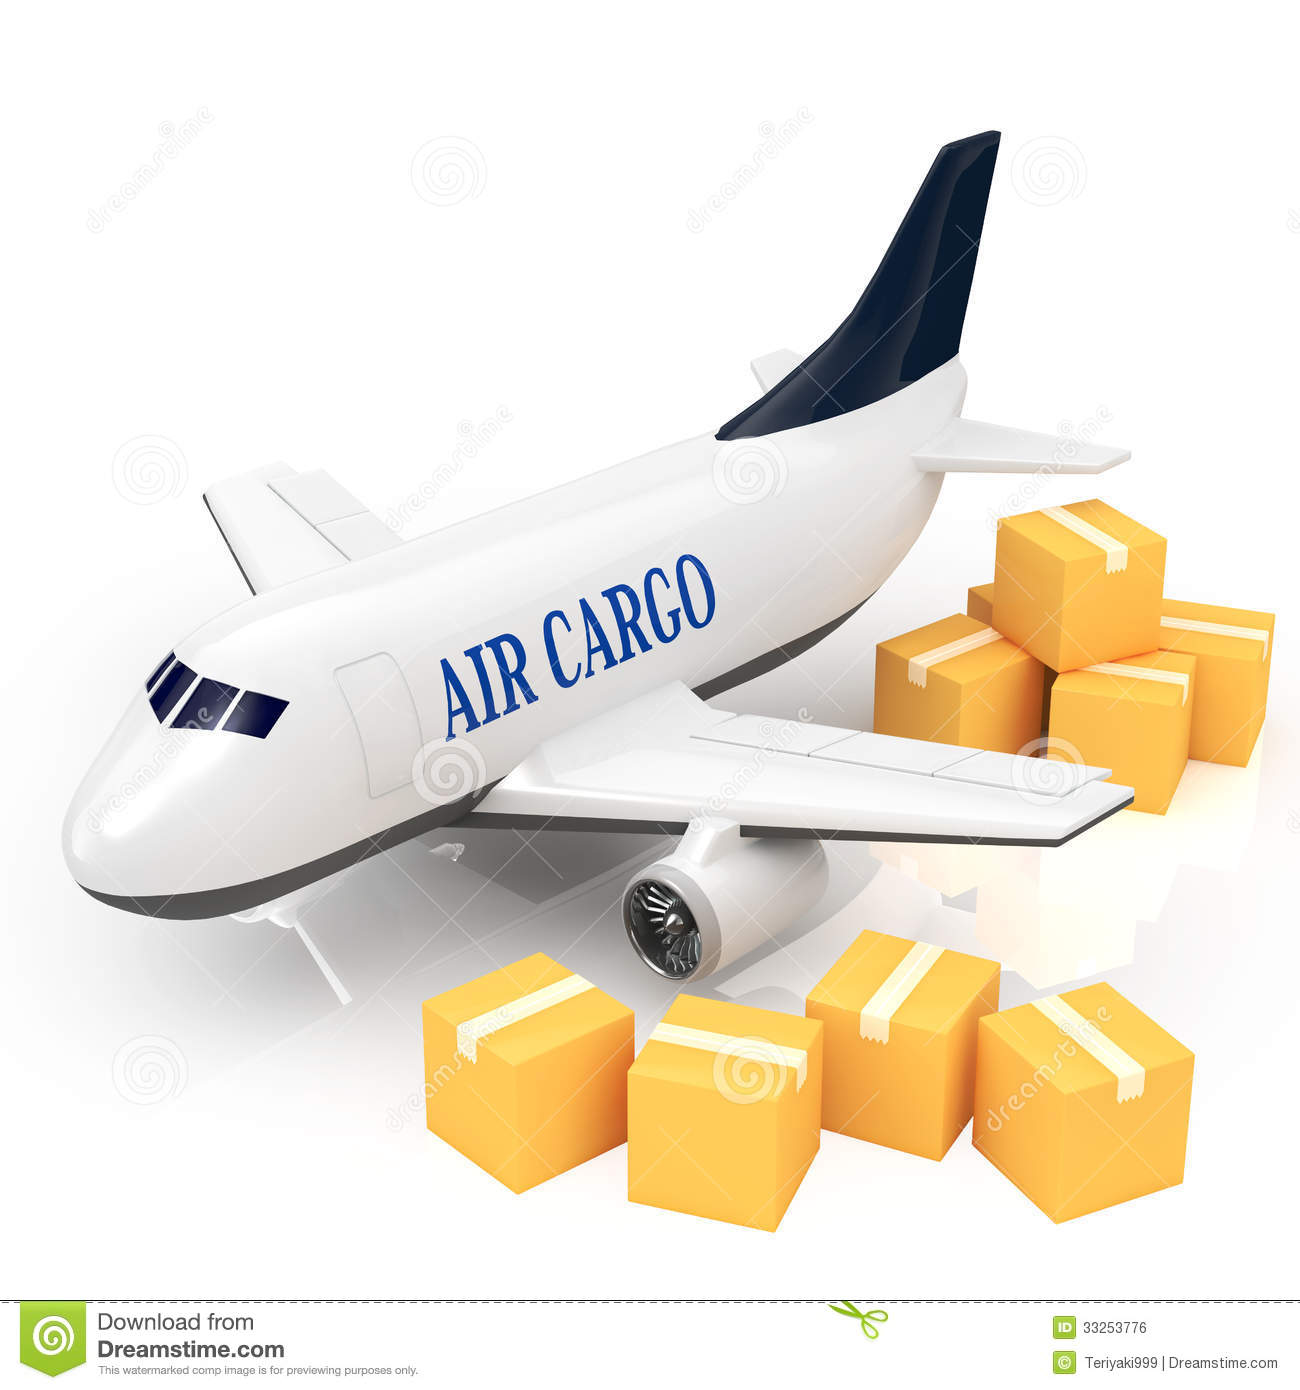 Clipart of shipping plane.